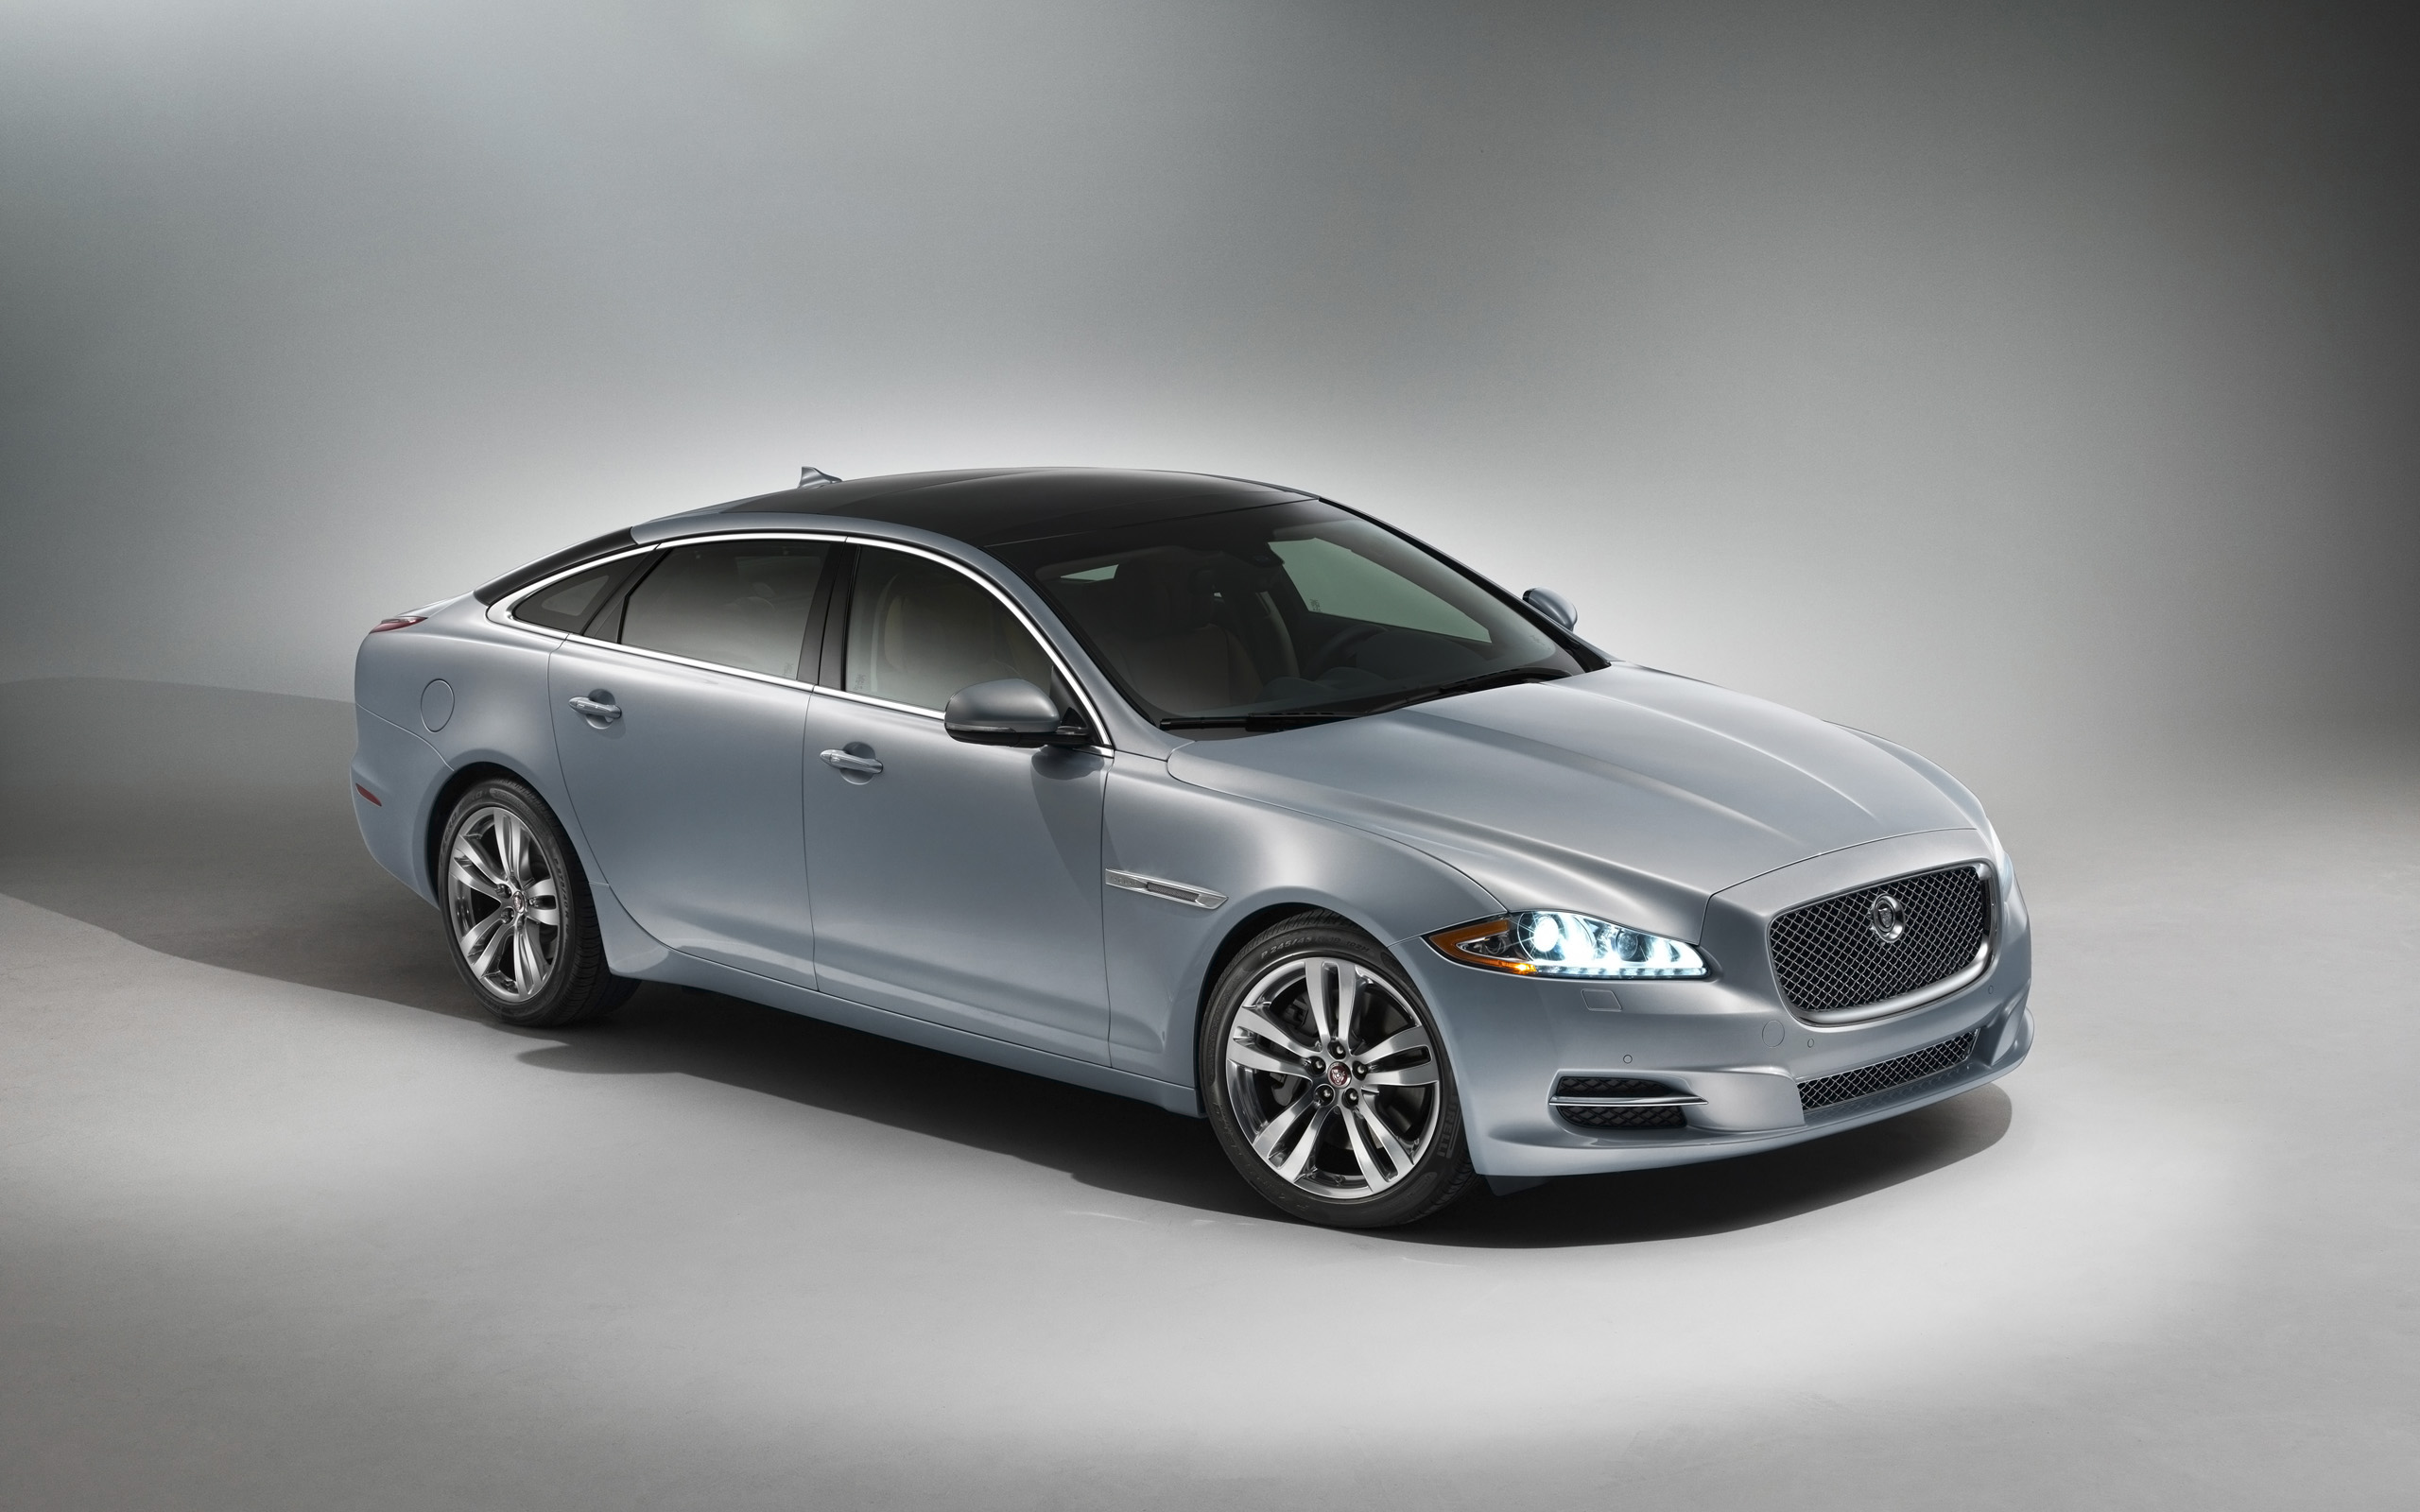 drive pinterest jaguar pin and sedans page motion xjr luxury first cars